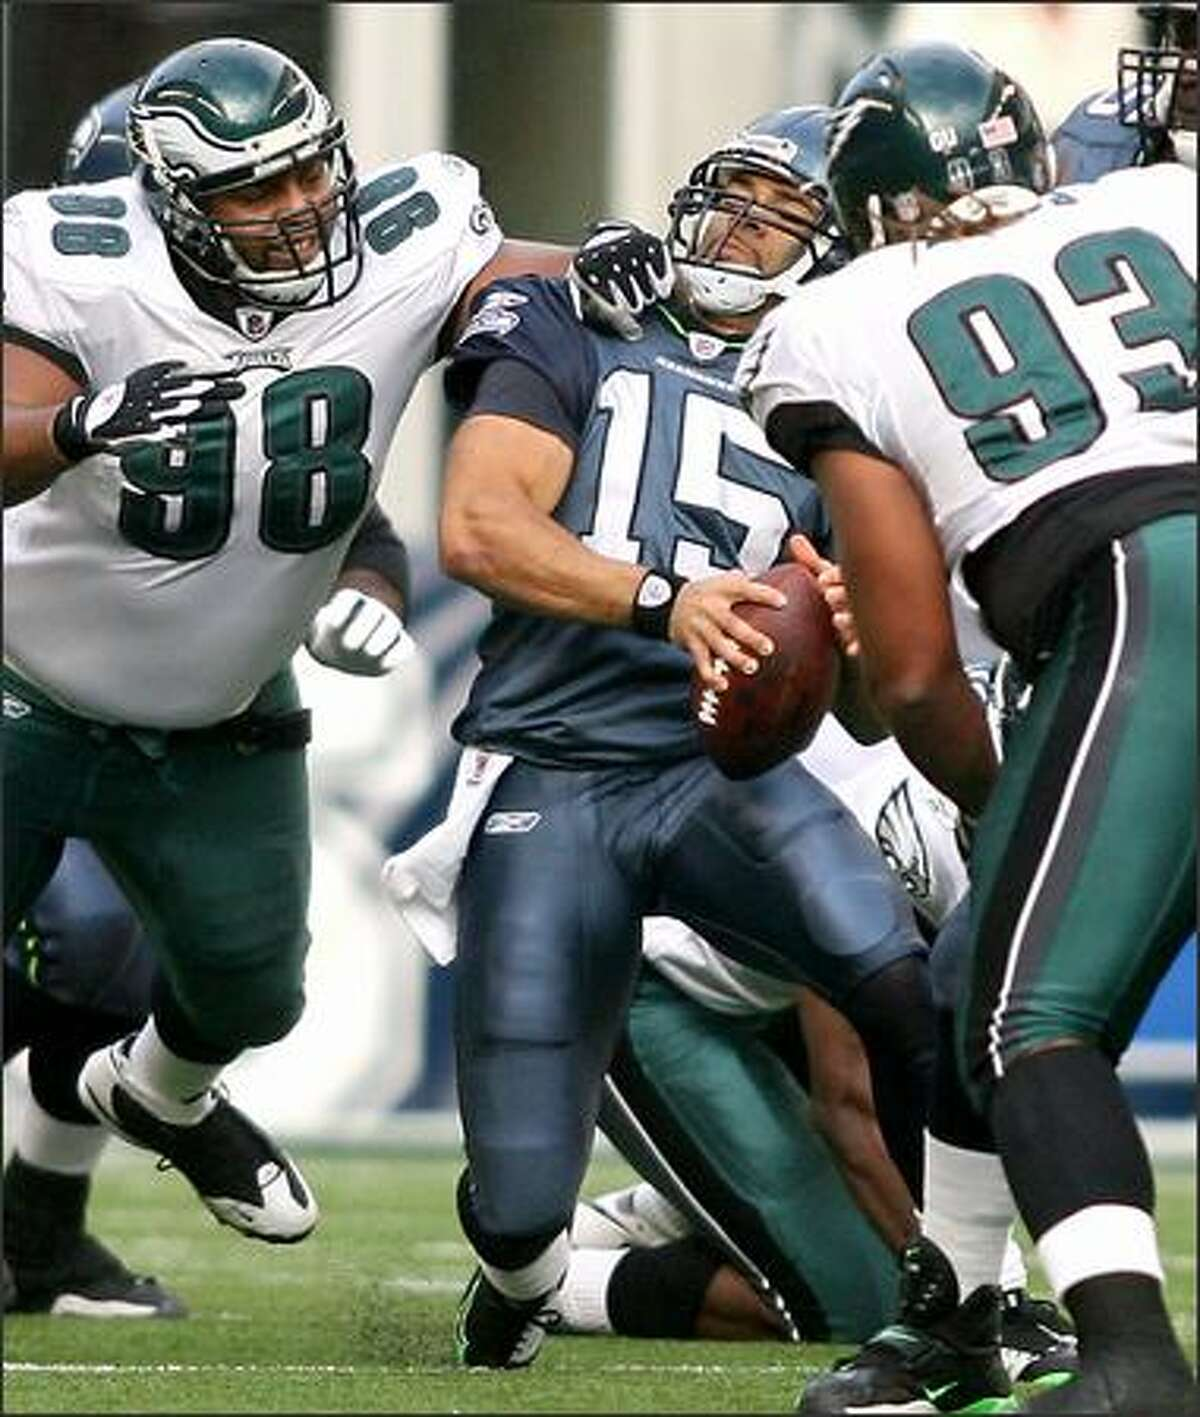 Quarterback Seneca Wallace is pressured in the pocket by defensive tackle Mike Patterson as the Philadelphia Eagles beat the Seahawks 26-7 at Qwest Field on Nov. 2.